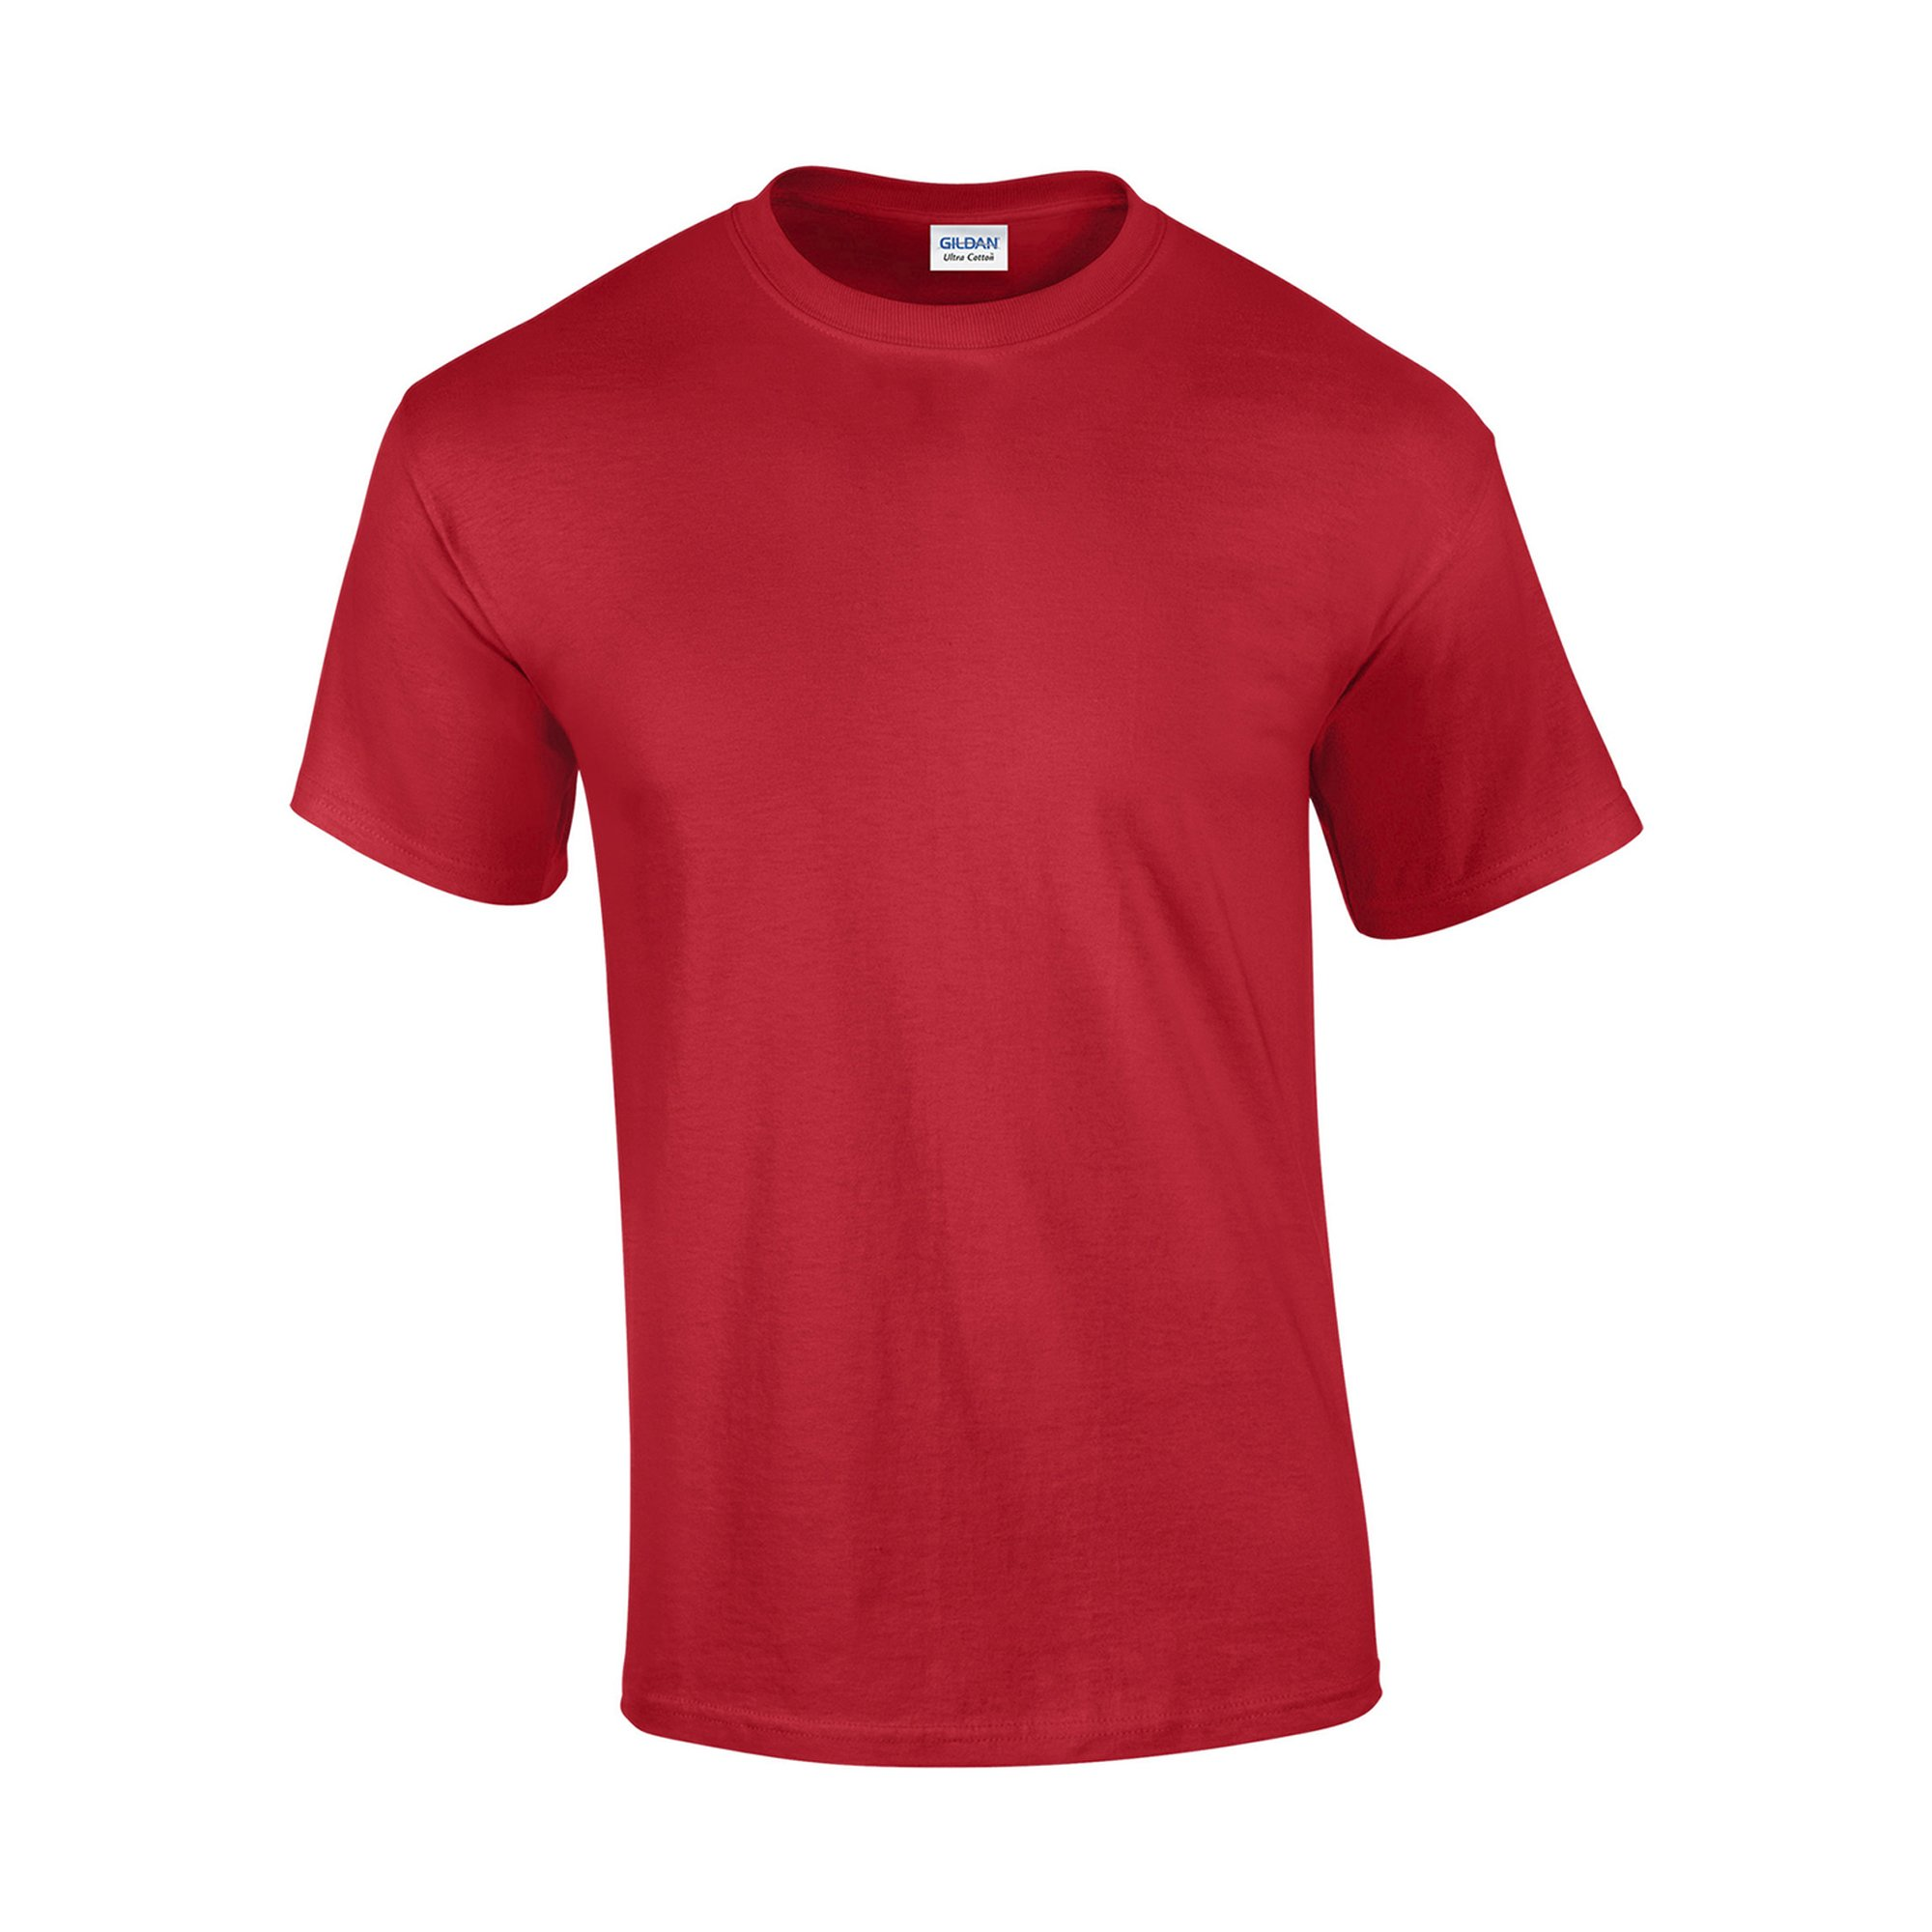 Free shipping and returns on Men's Red T-Shirts & Tank Tops at r0nd.tk